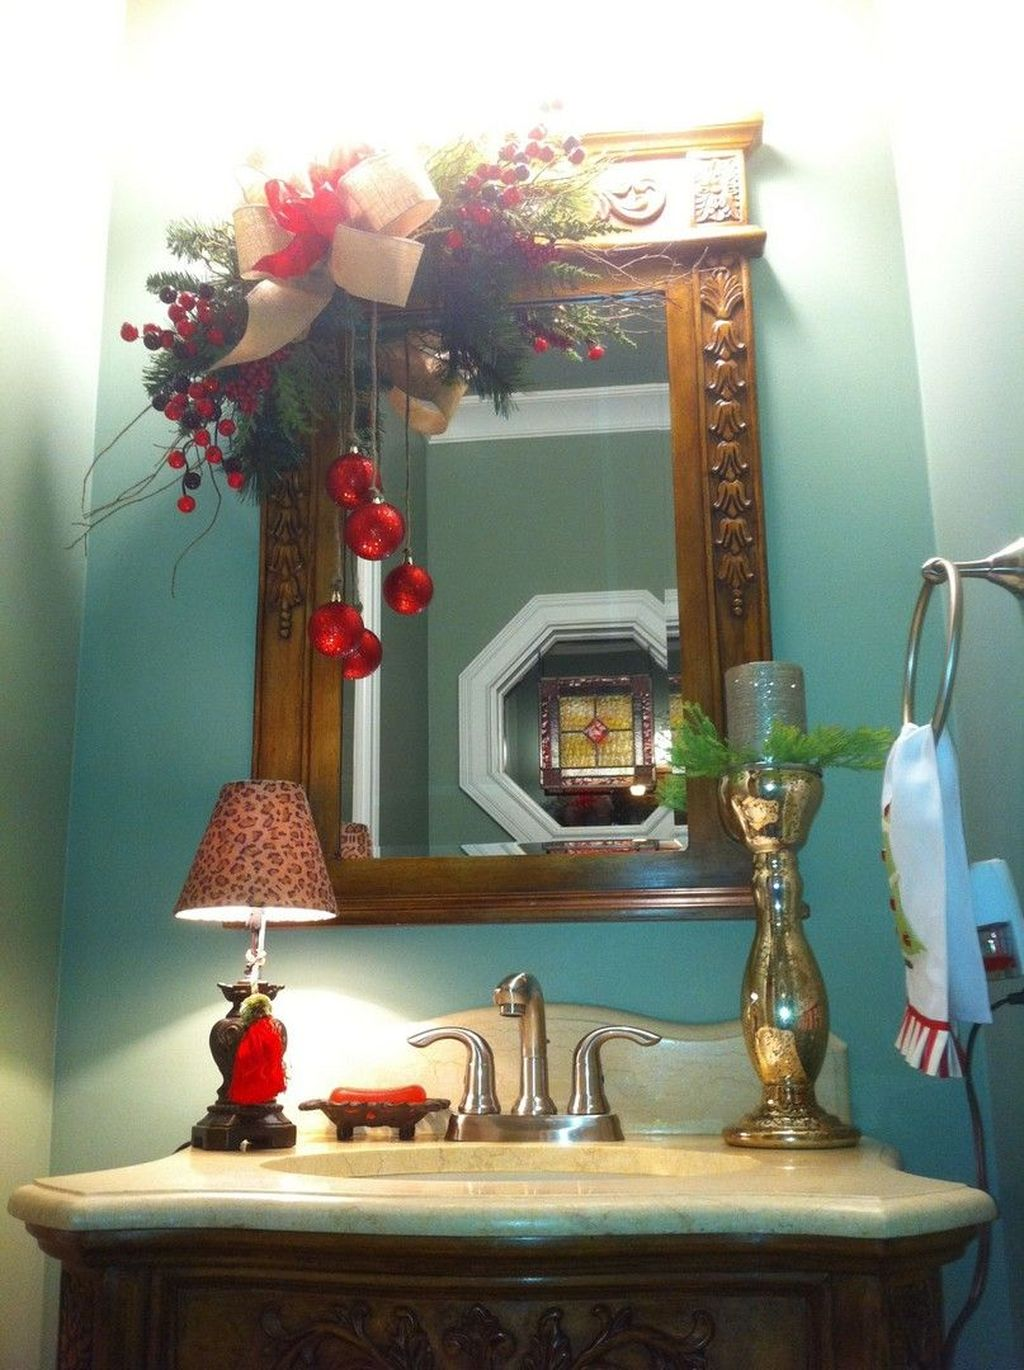 Fabulous Christmas Theme Bathroom Decor Ideas Trend 2019 31